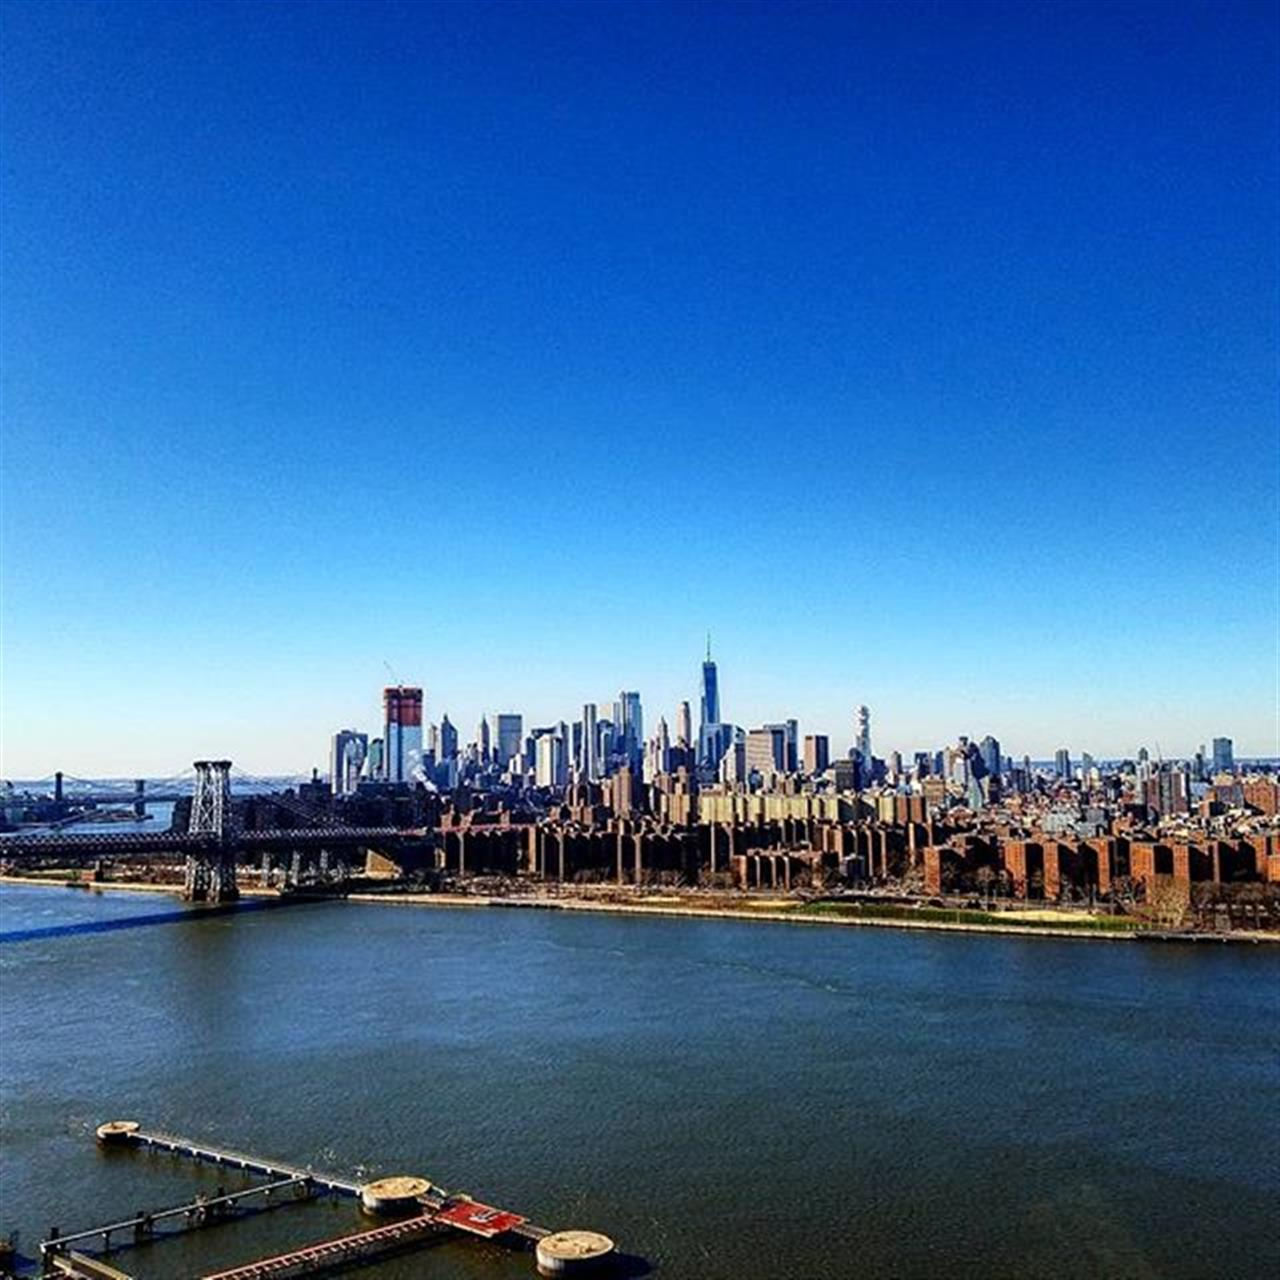 The view from my listing at One Northside Piers is, well... You be the judge. #spectacularview #spectacularviews #eastriver #northsidepiers #williamsburgwaterfront #williamsburgbrooklyn #luxuryrealestate #exploreyourhood #leadingrelocal #leadingrealestatecompaniesoftheworld #manhattanview #manhattanskyline #realestatemuse #realestateporn